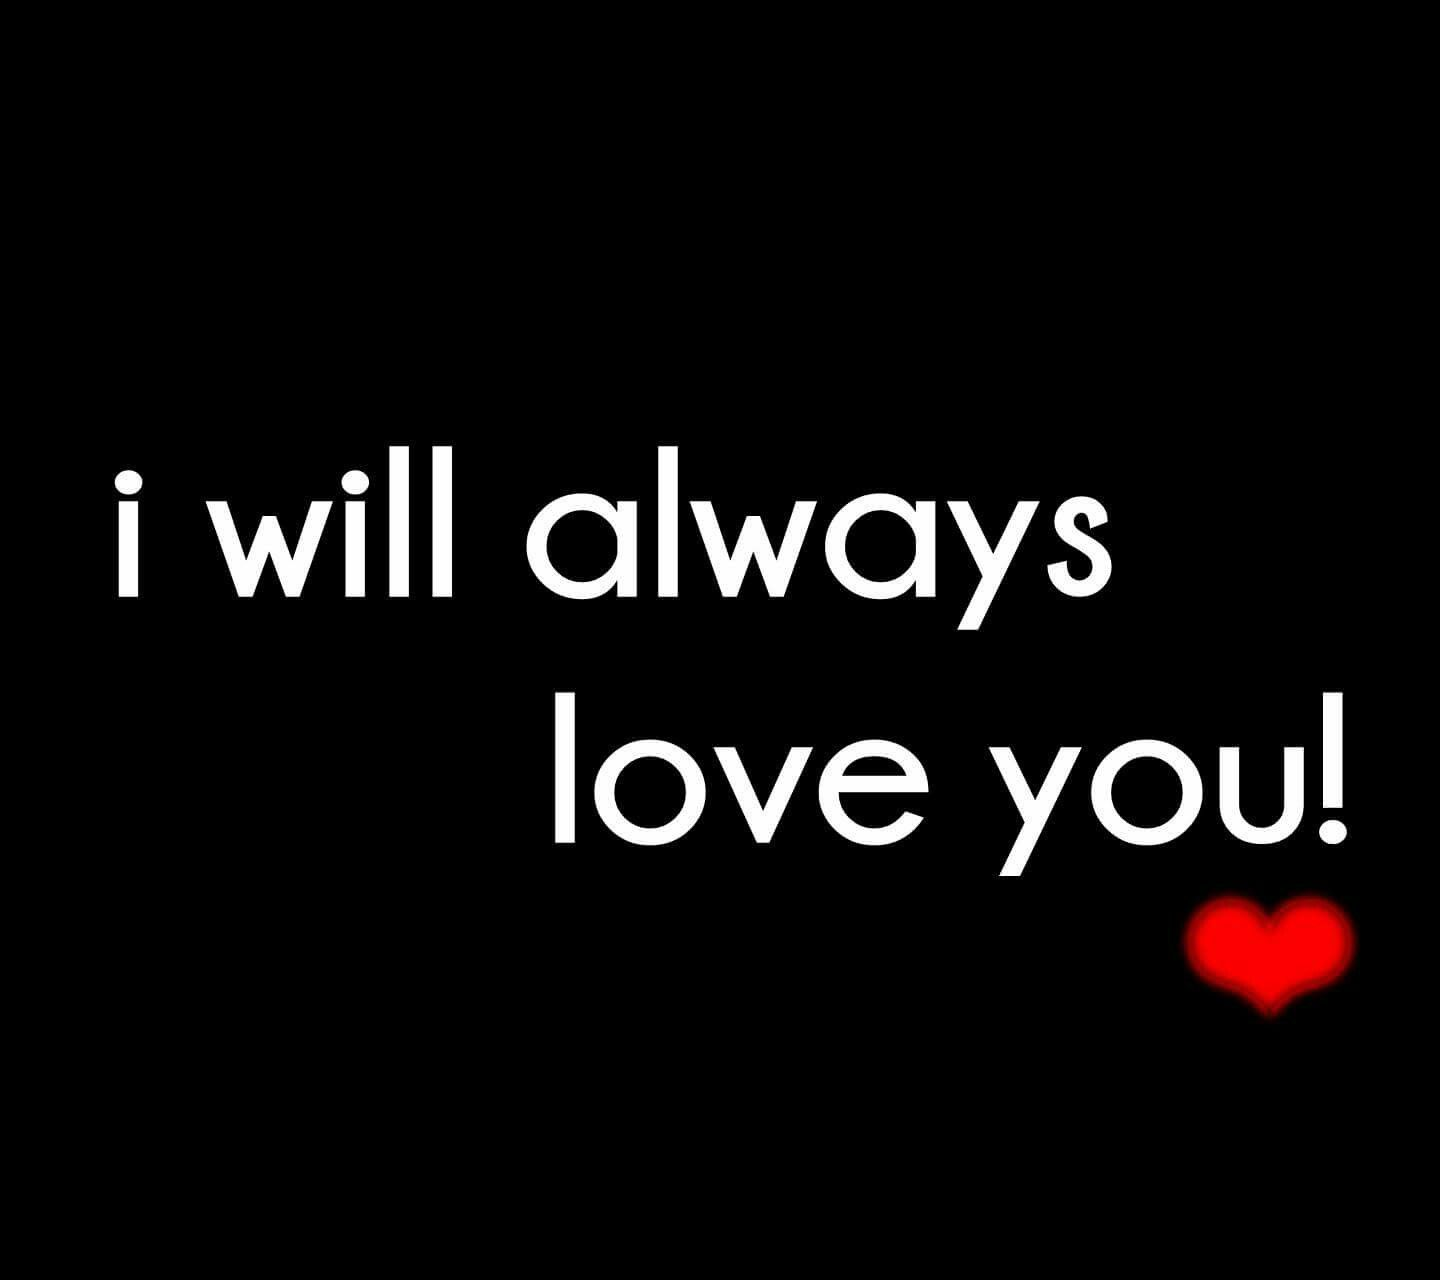 I Will Always Love You Quotes Custom 3  I Will Always Love You V^v 3 V^v. Me And My Very